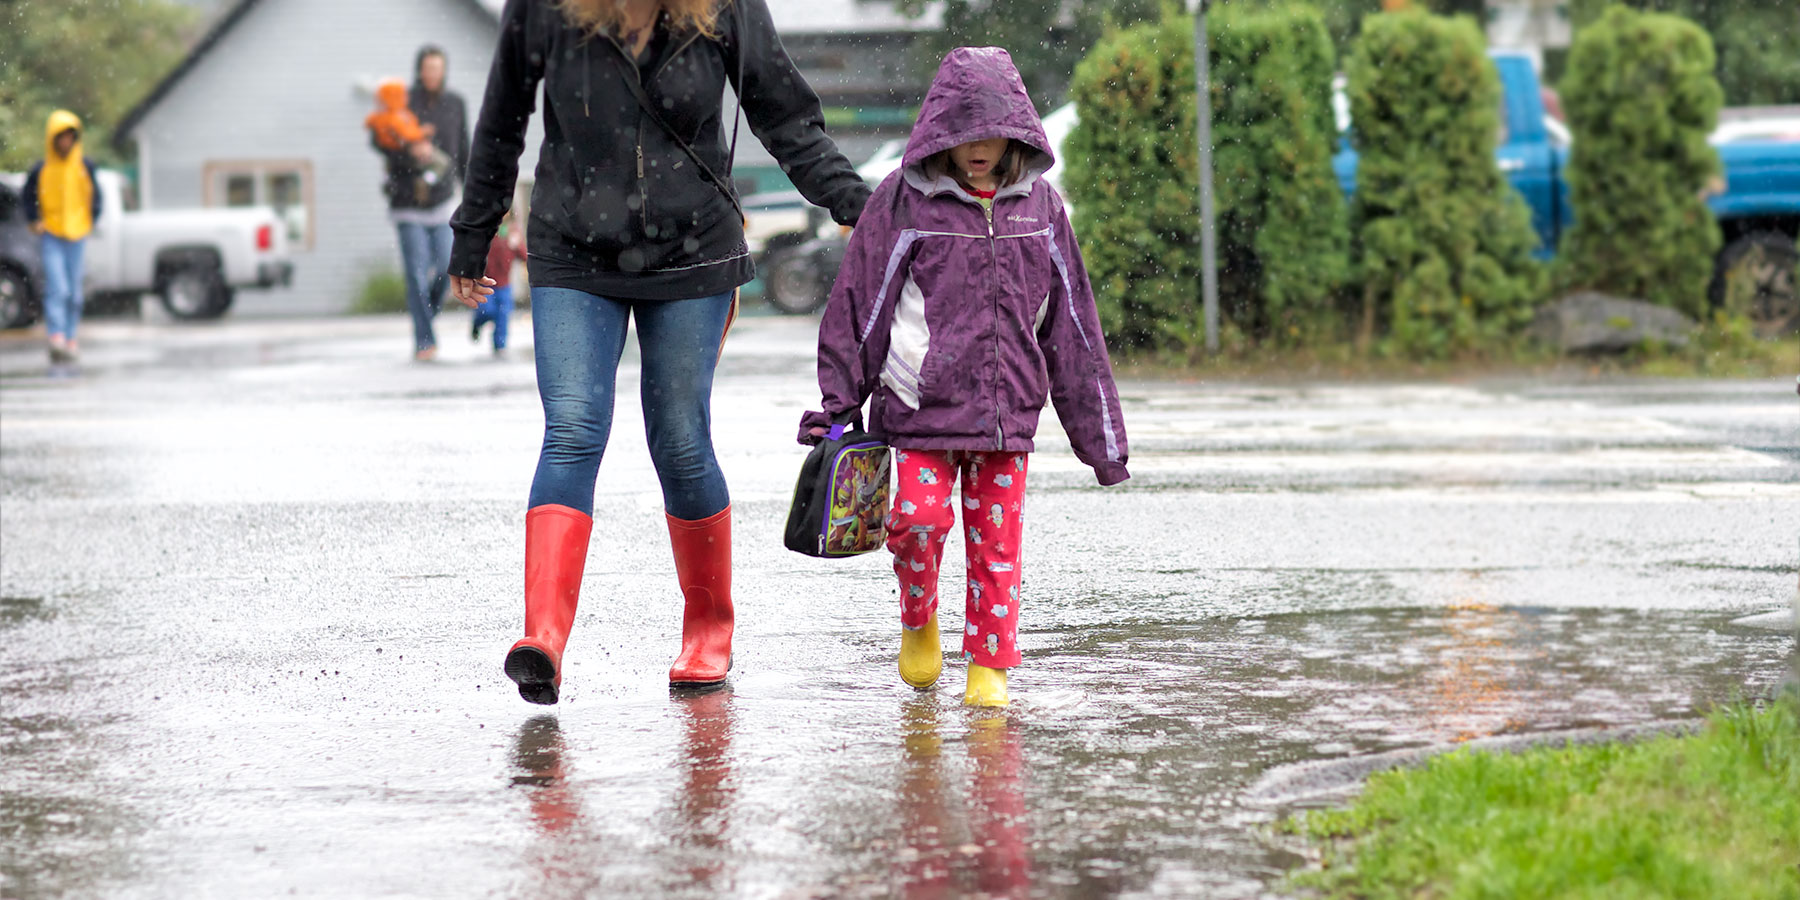 Rainy School Day ©johncameron.ca